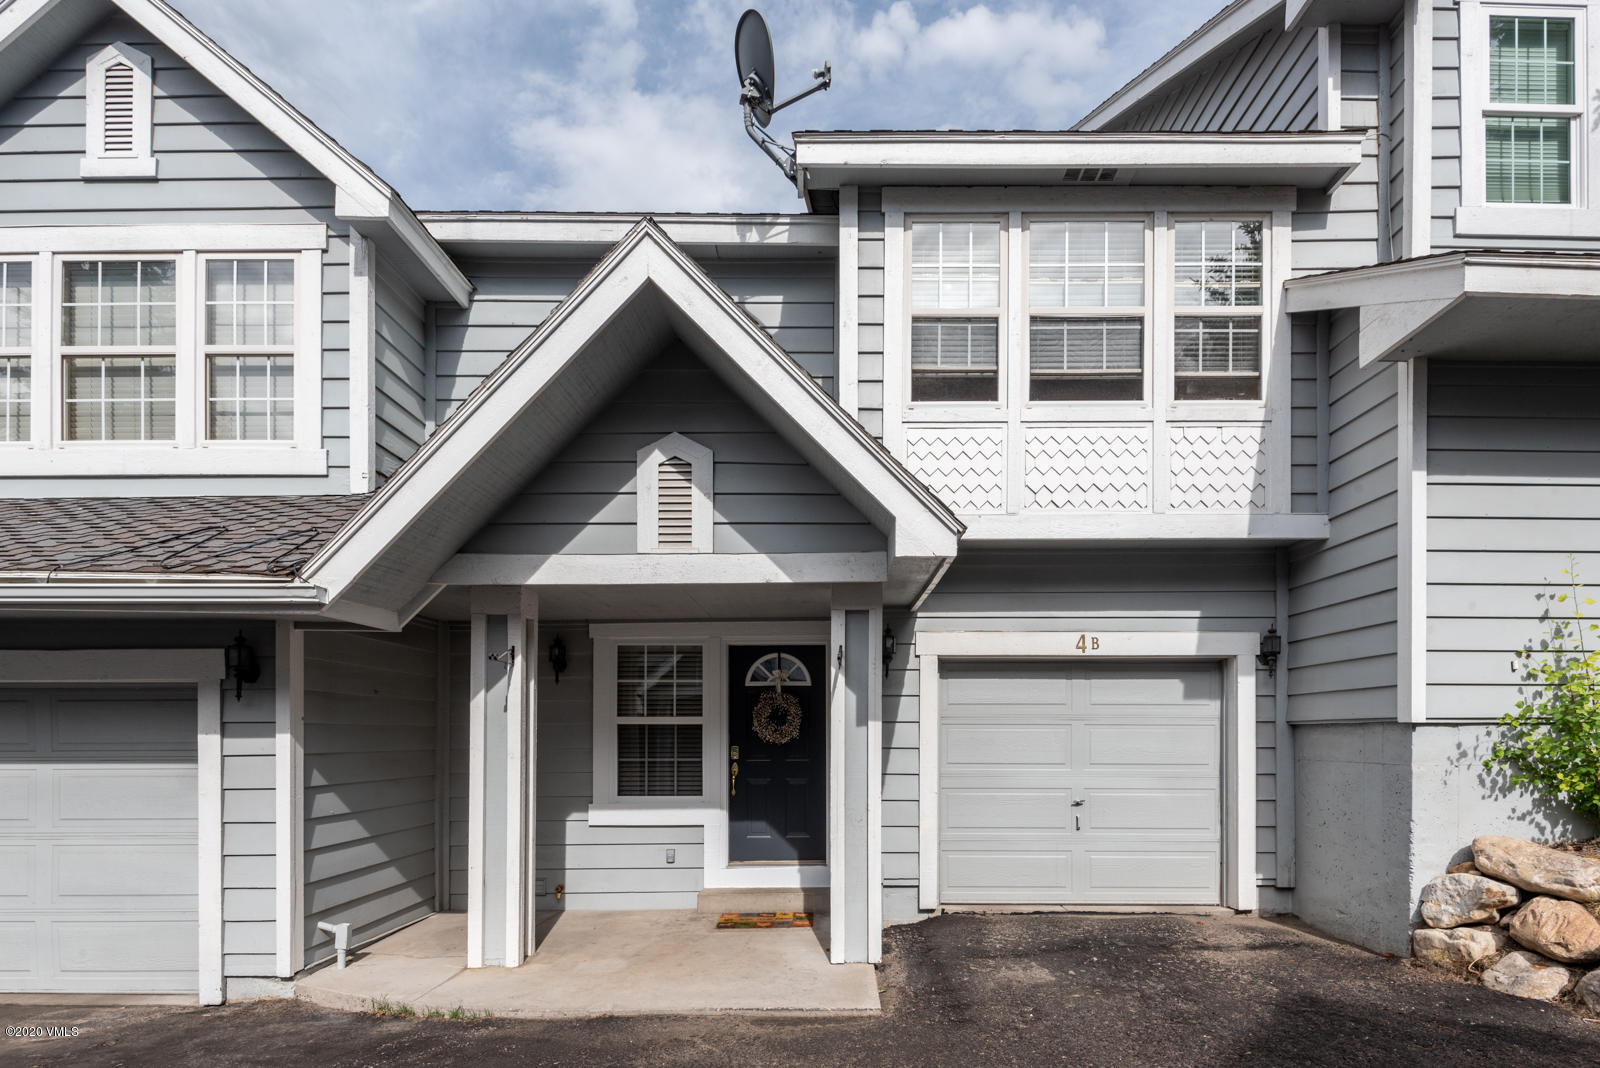 Well maintained 4 bedroom townhome in the heart of Edwards. Upgrades include granite countertops in the kitchen, hardwood floors on the main living level, stone floors in the entry, stone fireplace surround, new furnace, hot water heater and washer dryer within the last 2 years.Please observe the Covid 19 showing guidelines posted on the front door!